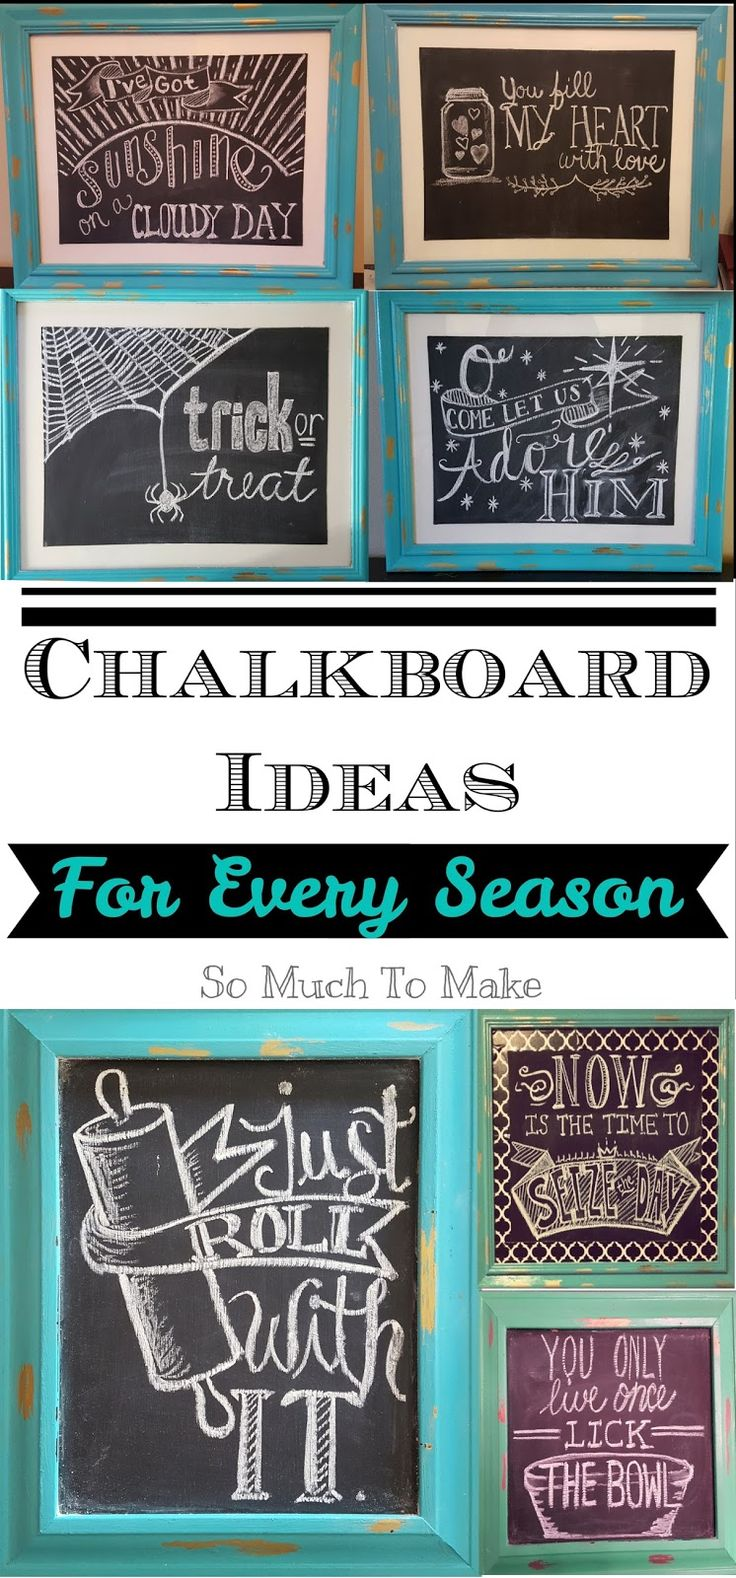 259 best decorative crafts and crafty decor images on Pinterest ...